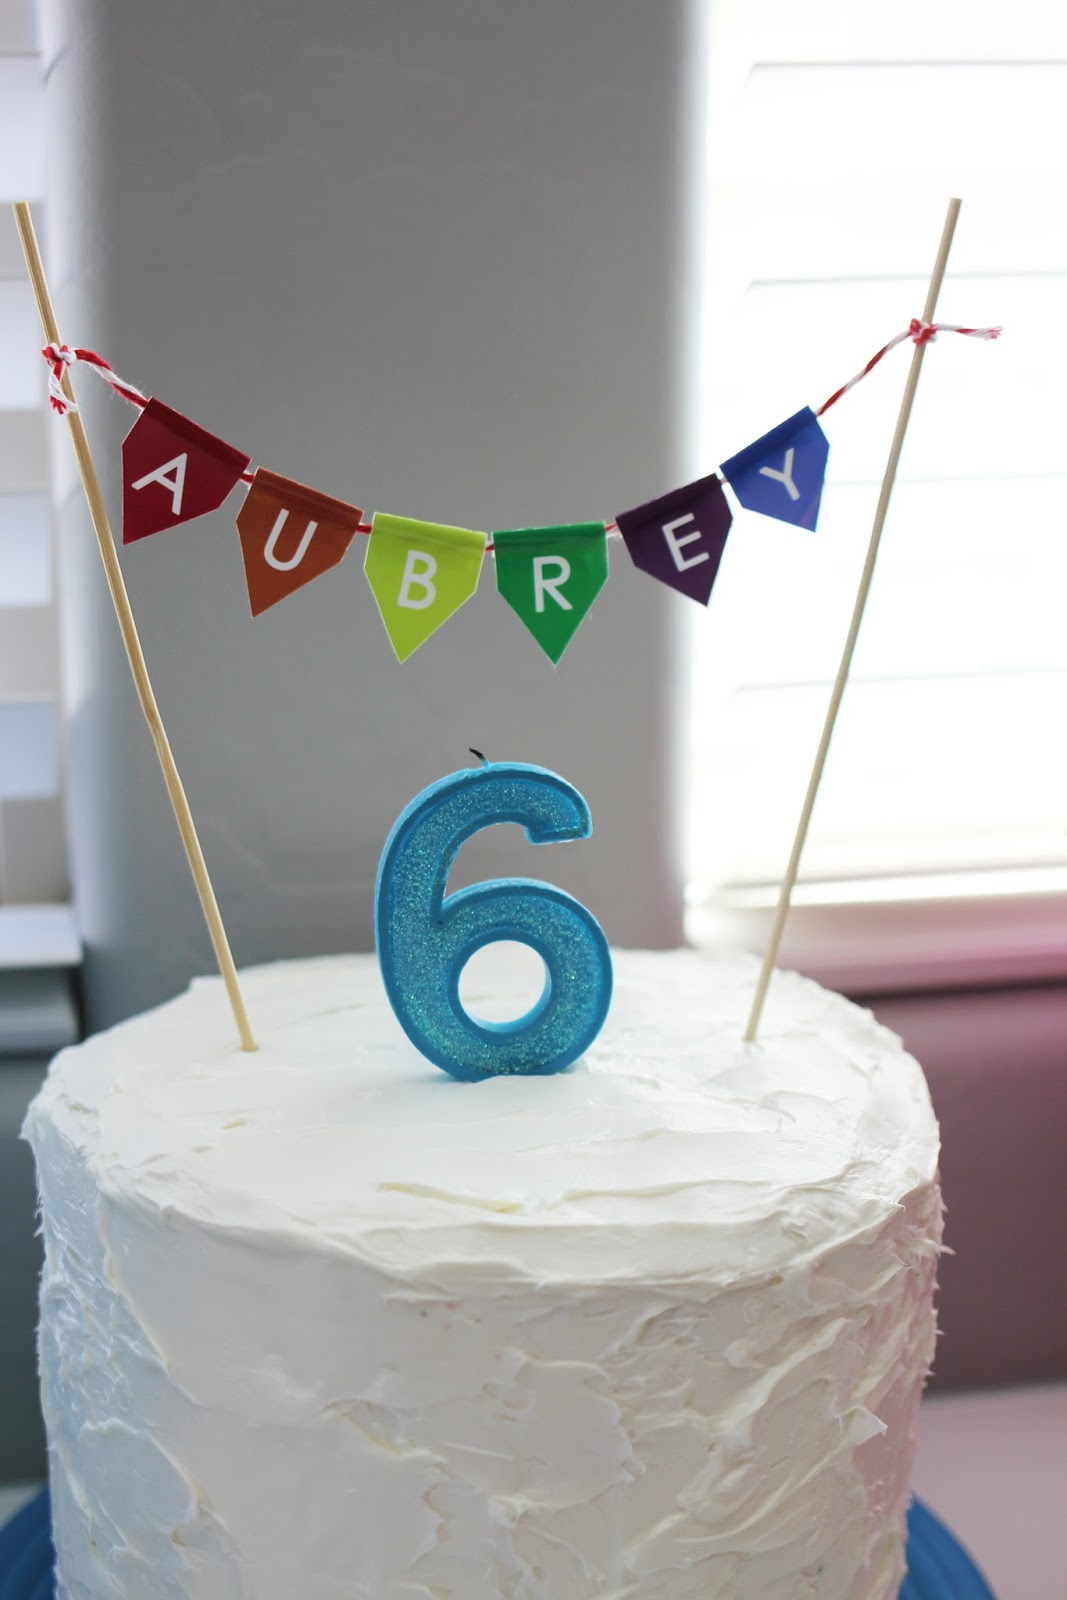 Of White Vanilla Pillsbury Frosting And Kept It Simple By Printing My Own Little Cake Banner With Daughters Name In Rainbow Colors A 6 Candle